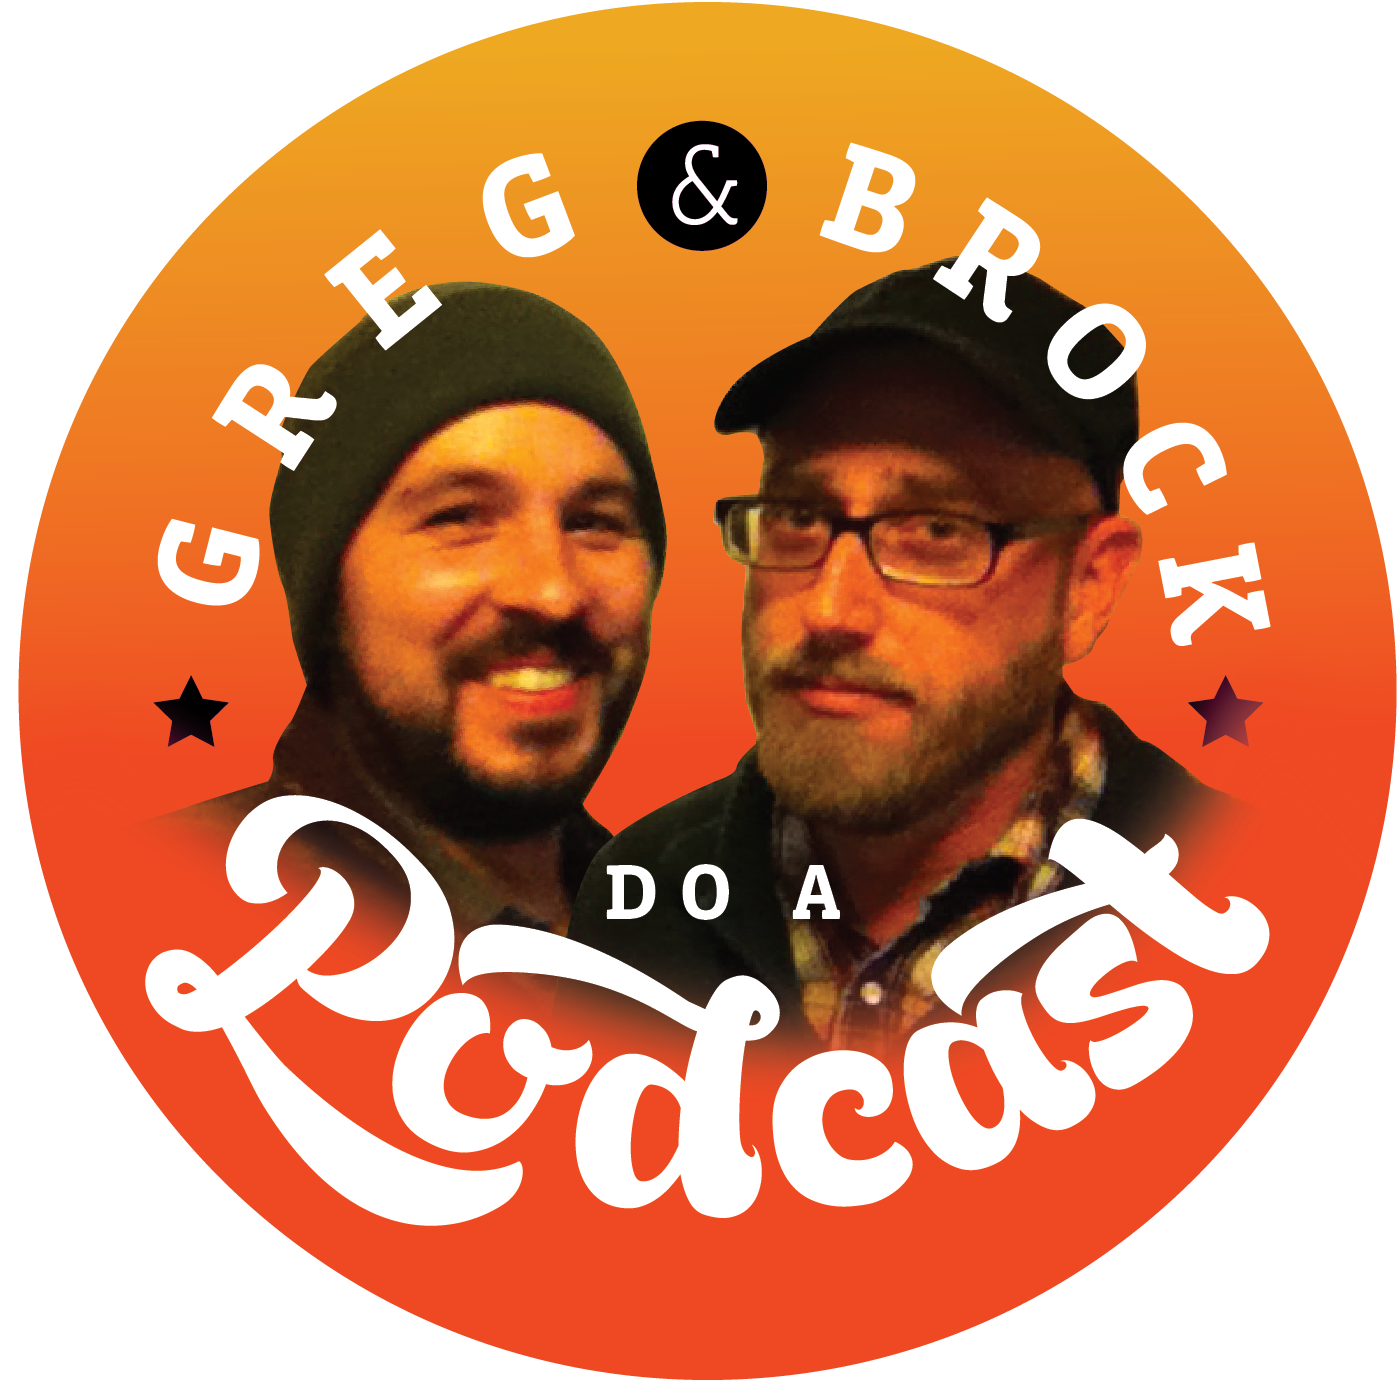 Greg & Brock do a Podcast